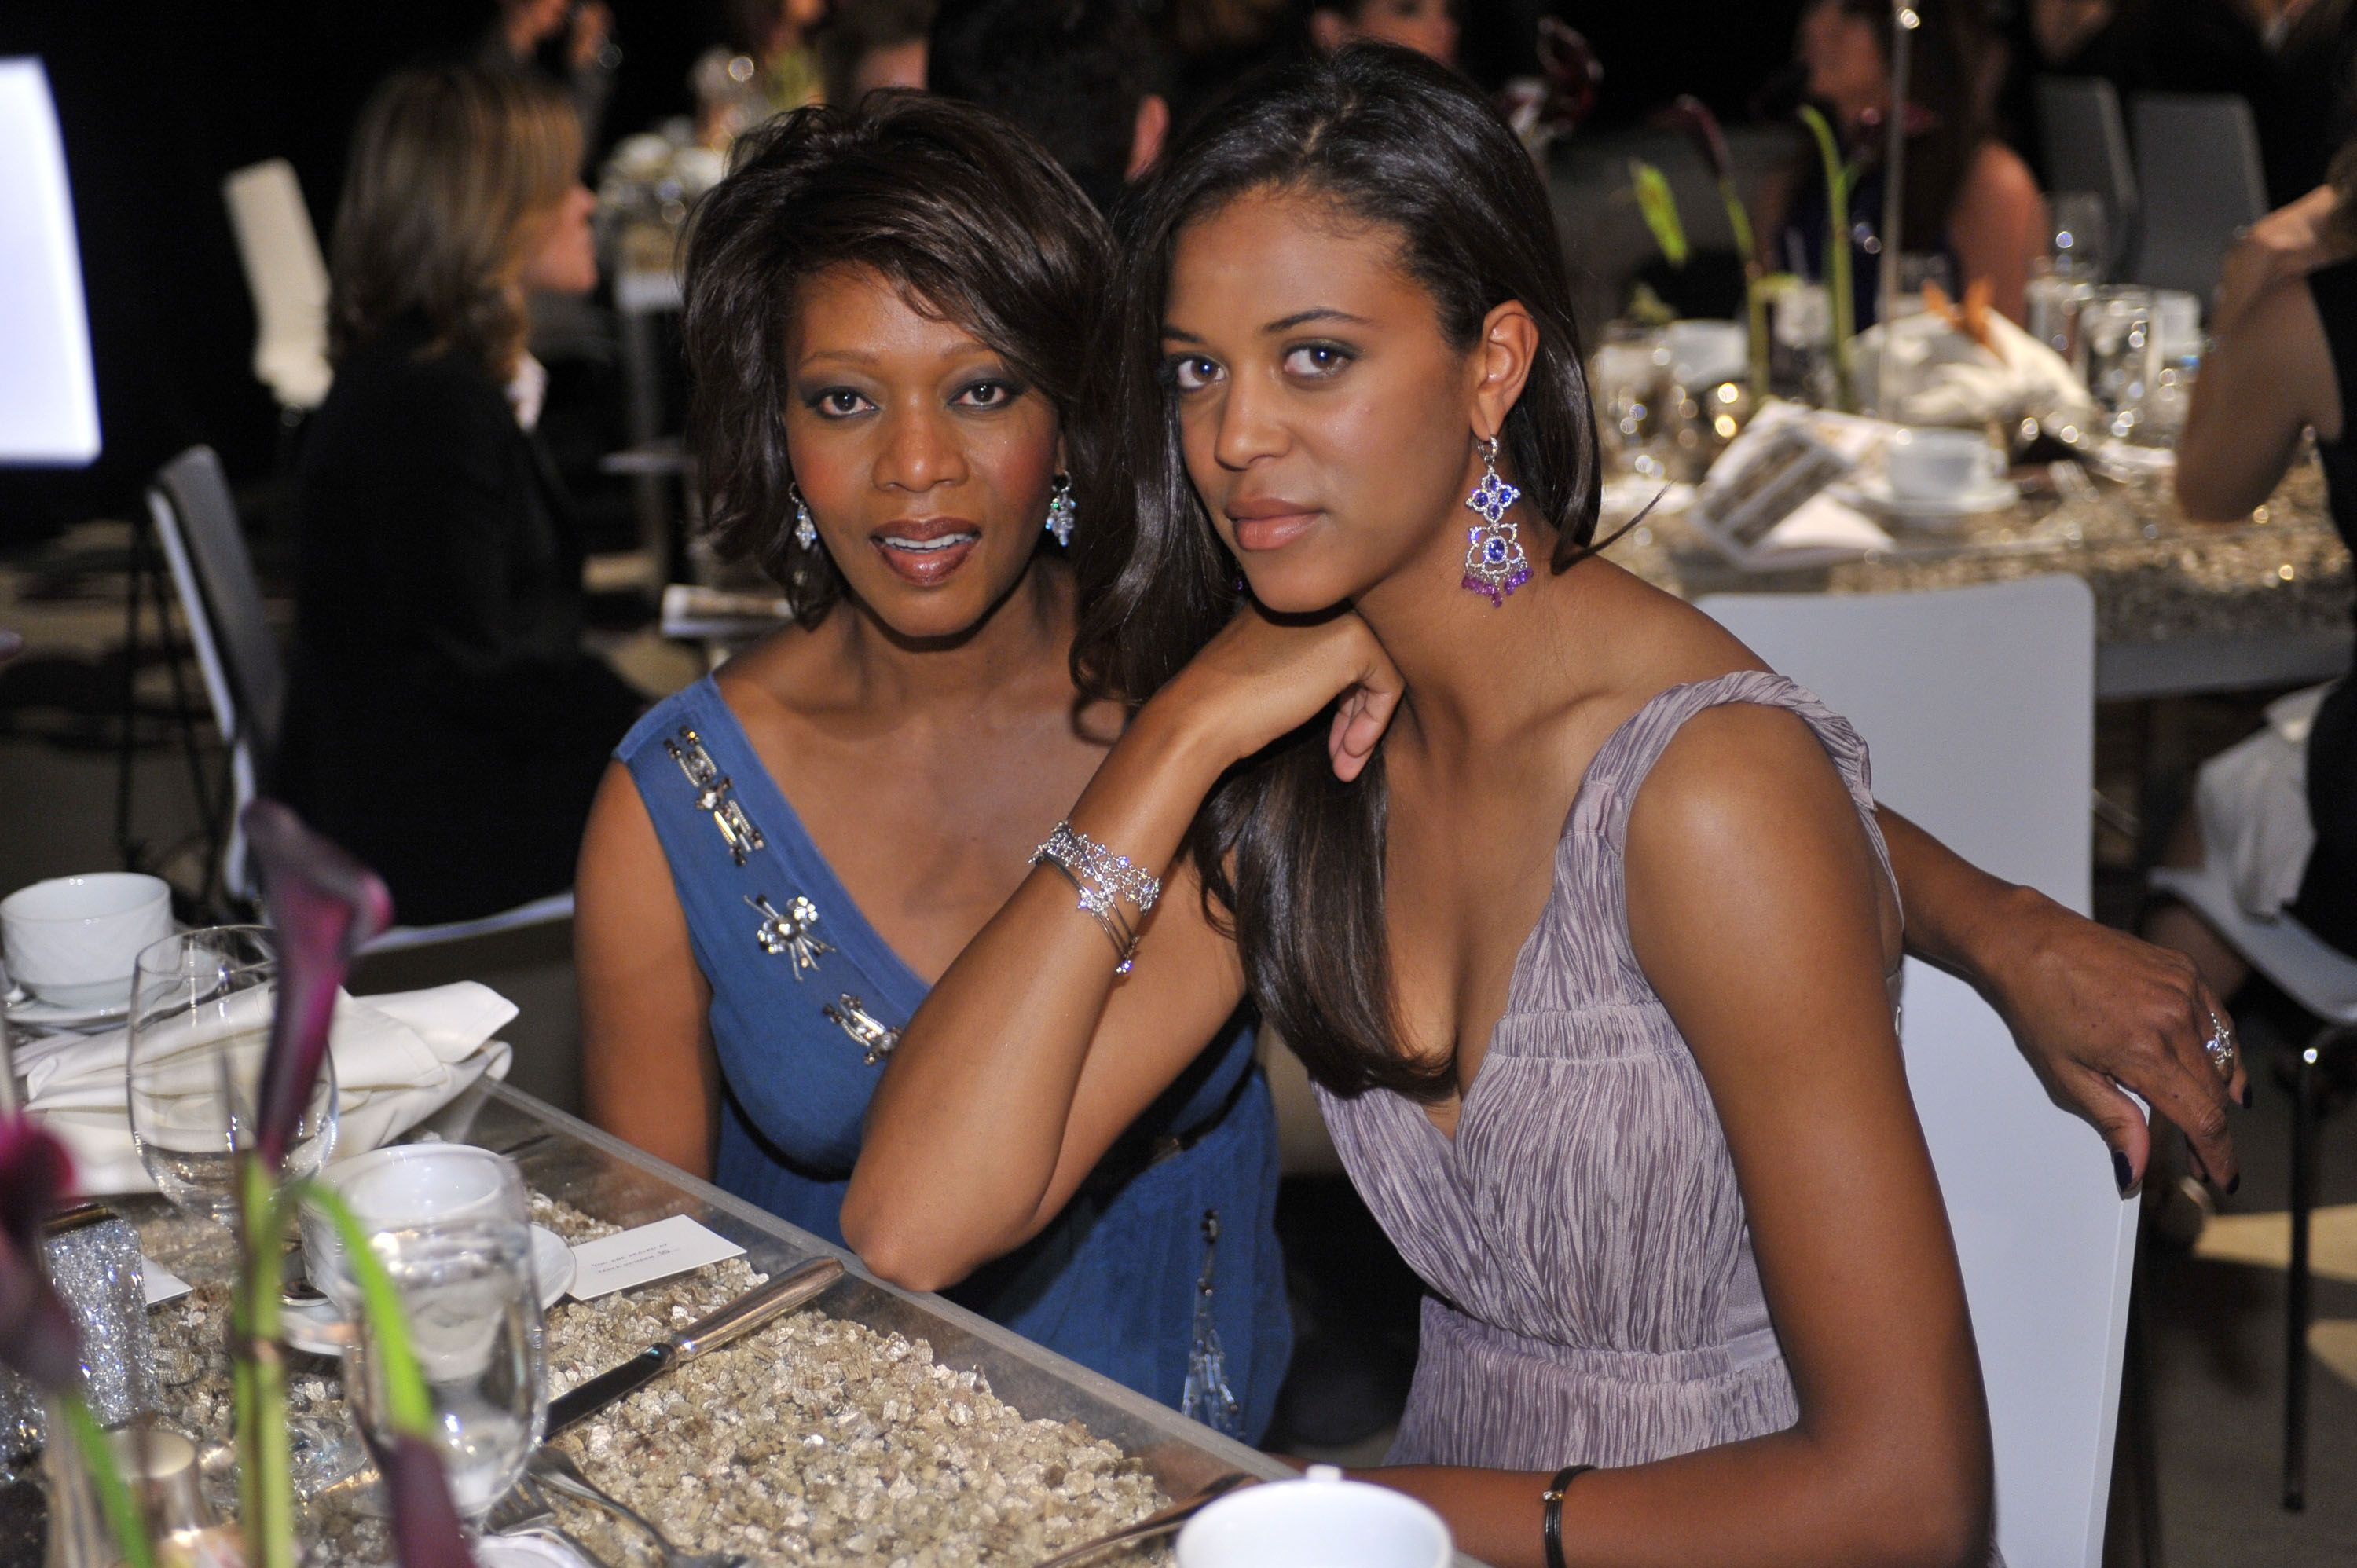 Alfre Woodard and Mavis Spencer at the 9th Annual Awards Season Diamond Fashion Show in 2010 in Holywood | Source: Getty Images